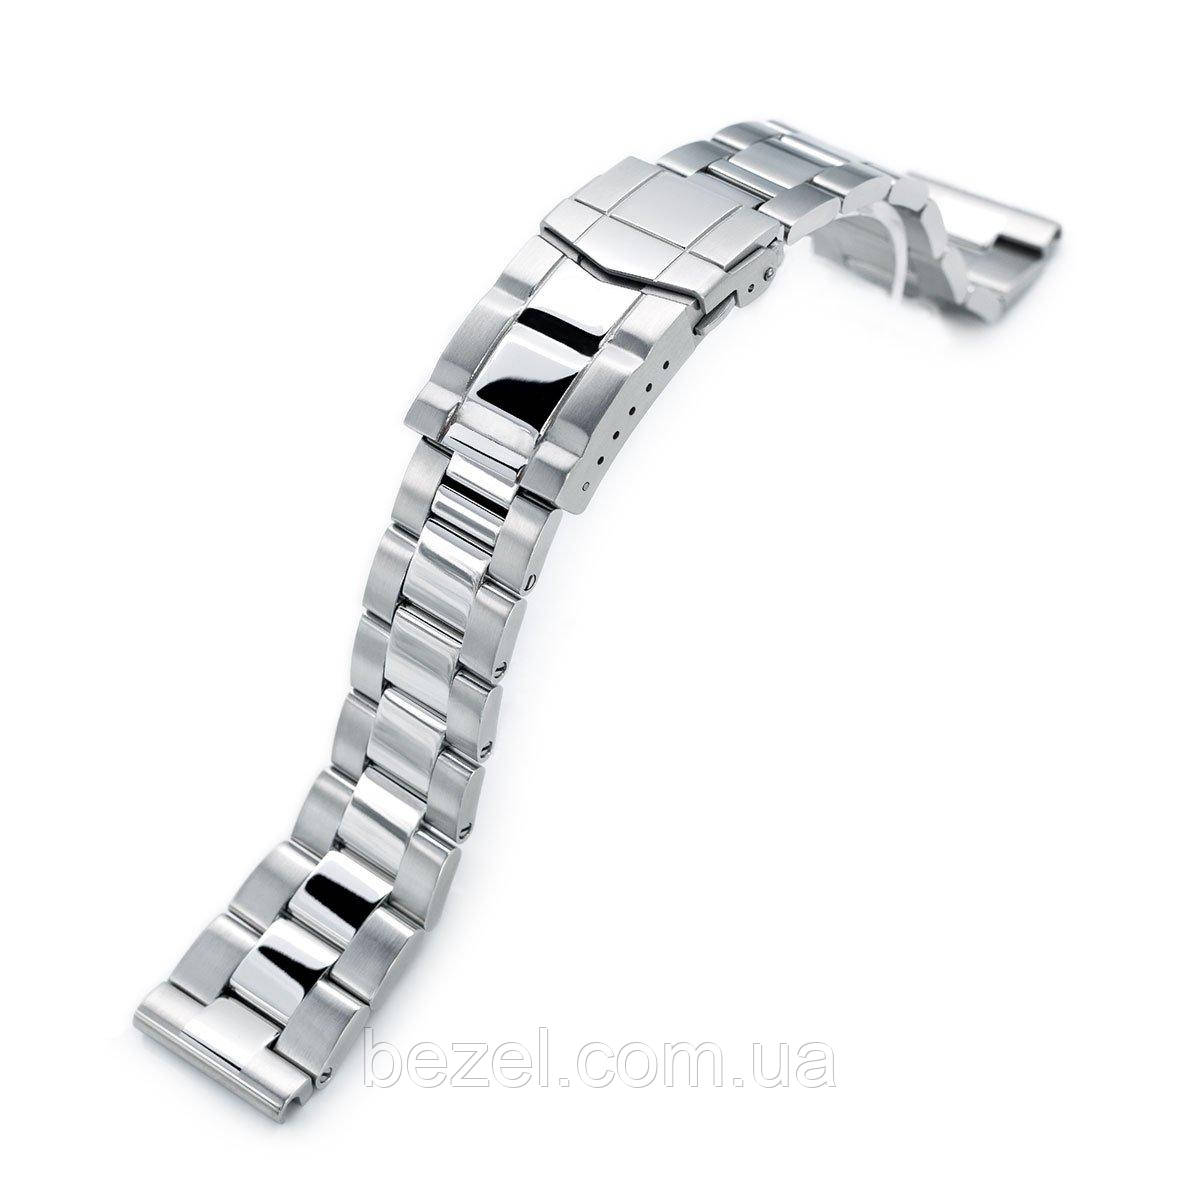 21.5mm Super Oyster 316L Stainless Steel Watch Band for Seiko Tuna, Brushed & Polished Submariner Clasp